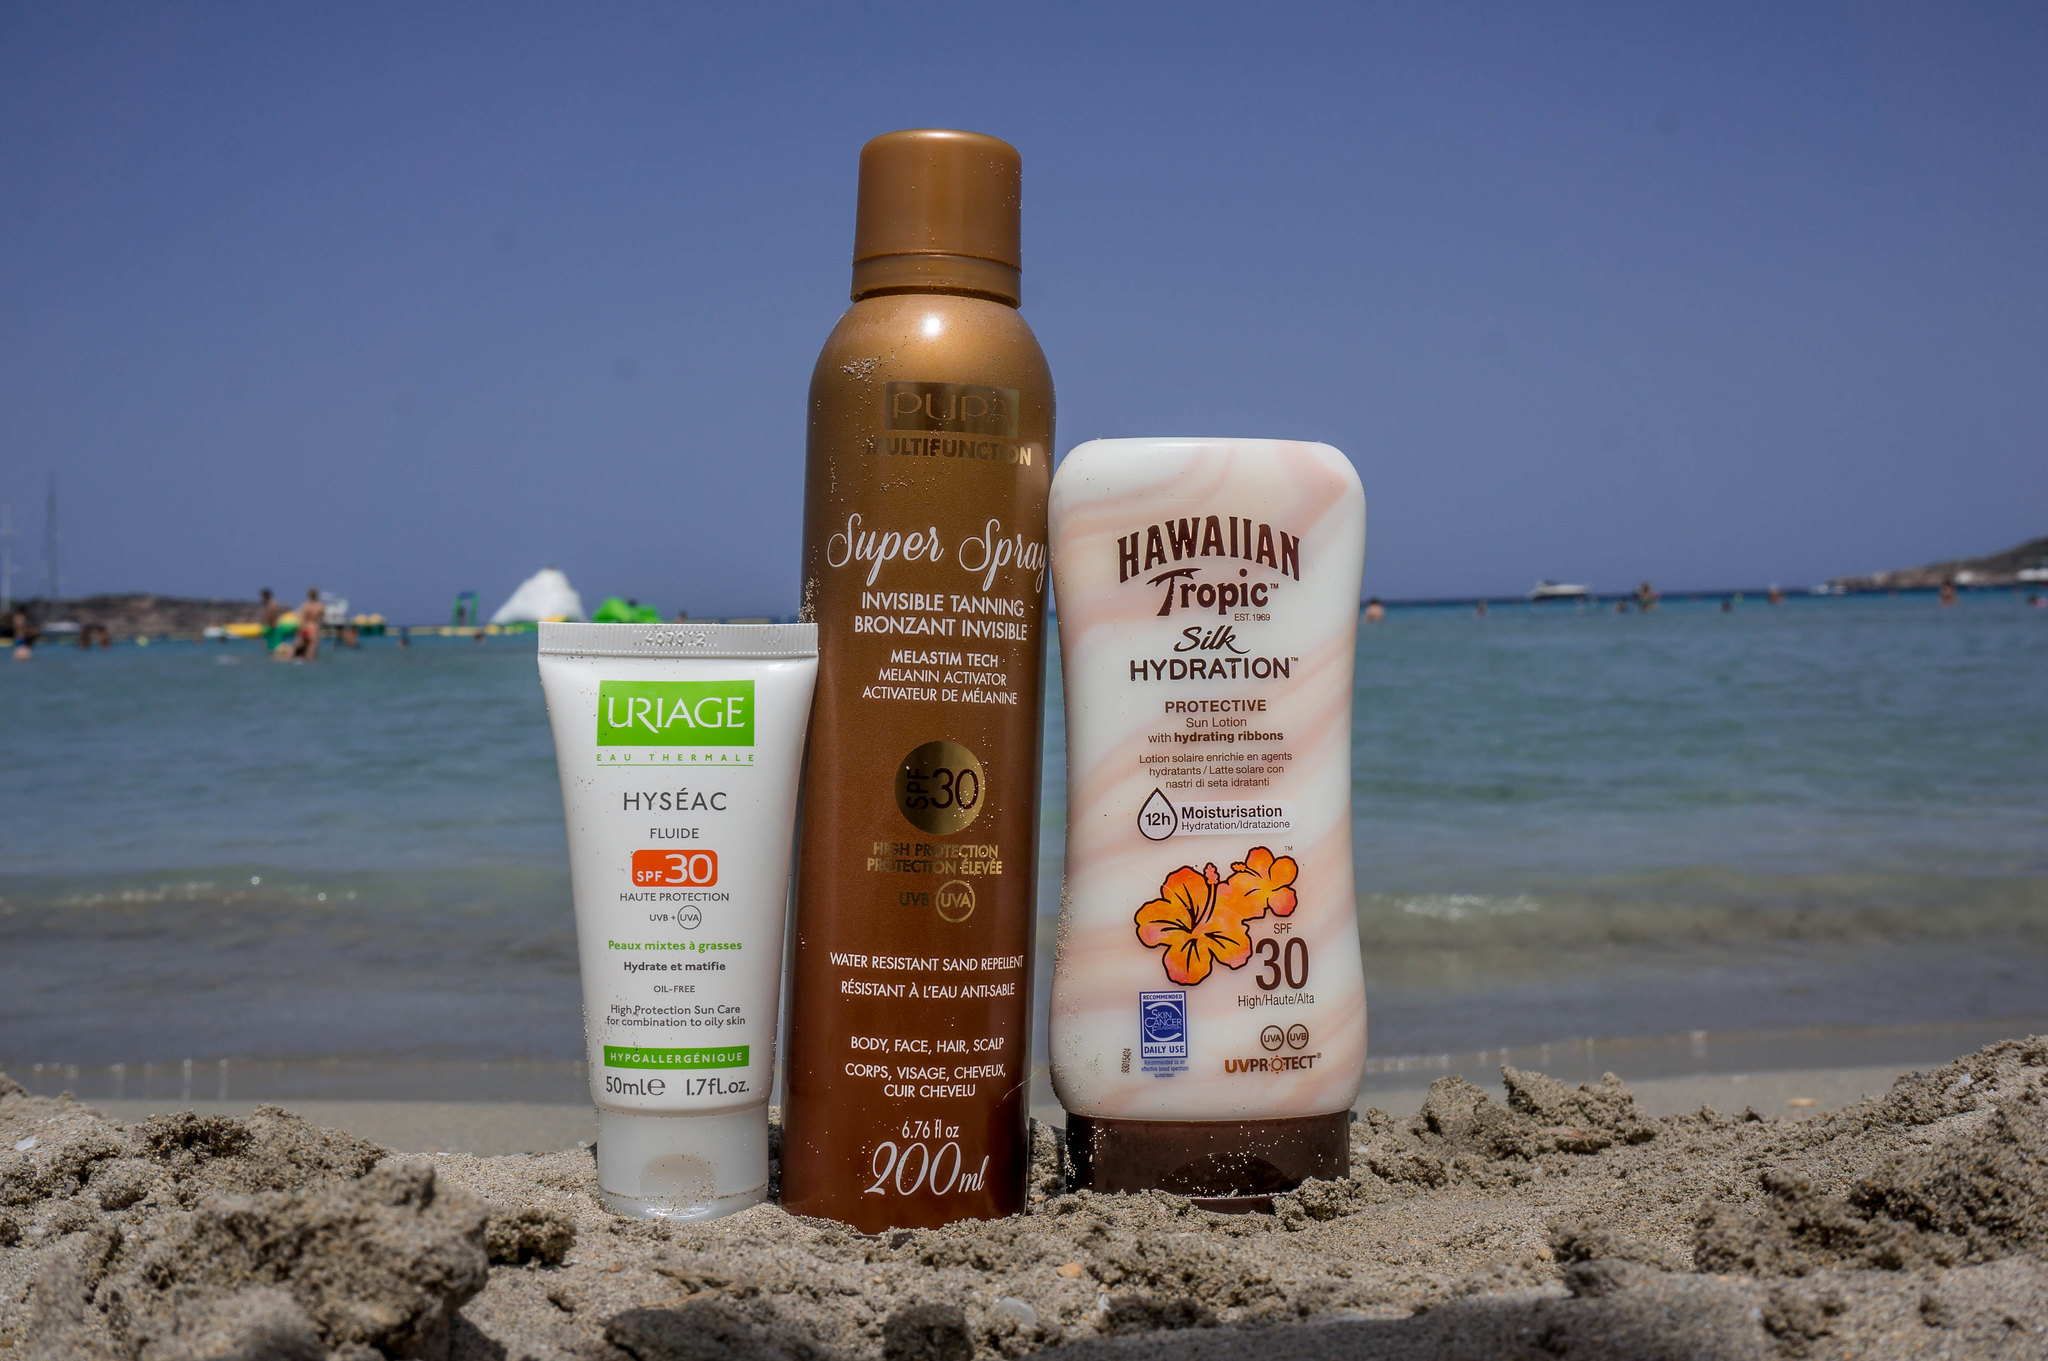 uriage-hyseac-fluide-spf30-pupa-super-spray-invisible-tanning-hawaiian-tropic-silk-hydration-spf30